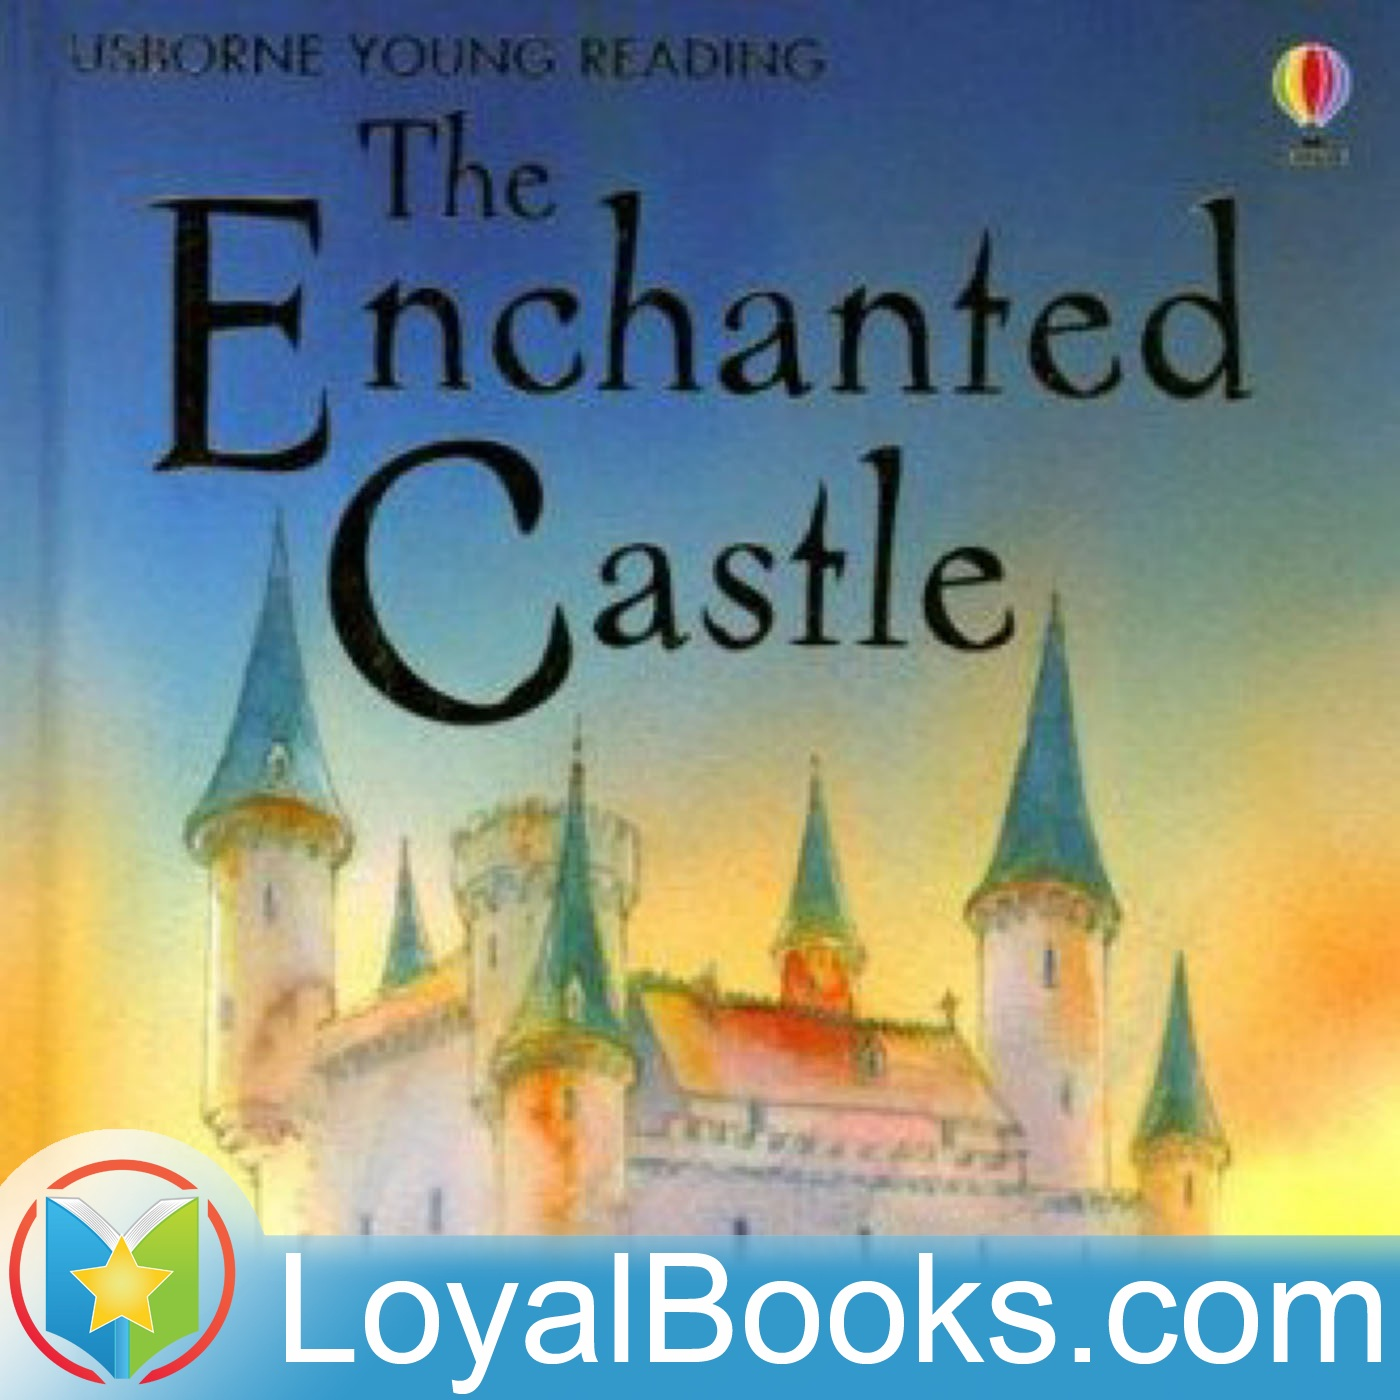 <![CDATA[The Enchanted Castle by Edith Nesbit]]>